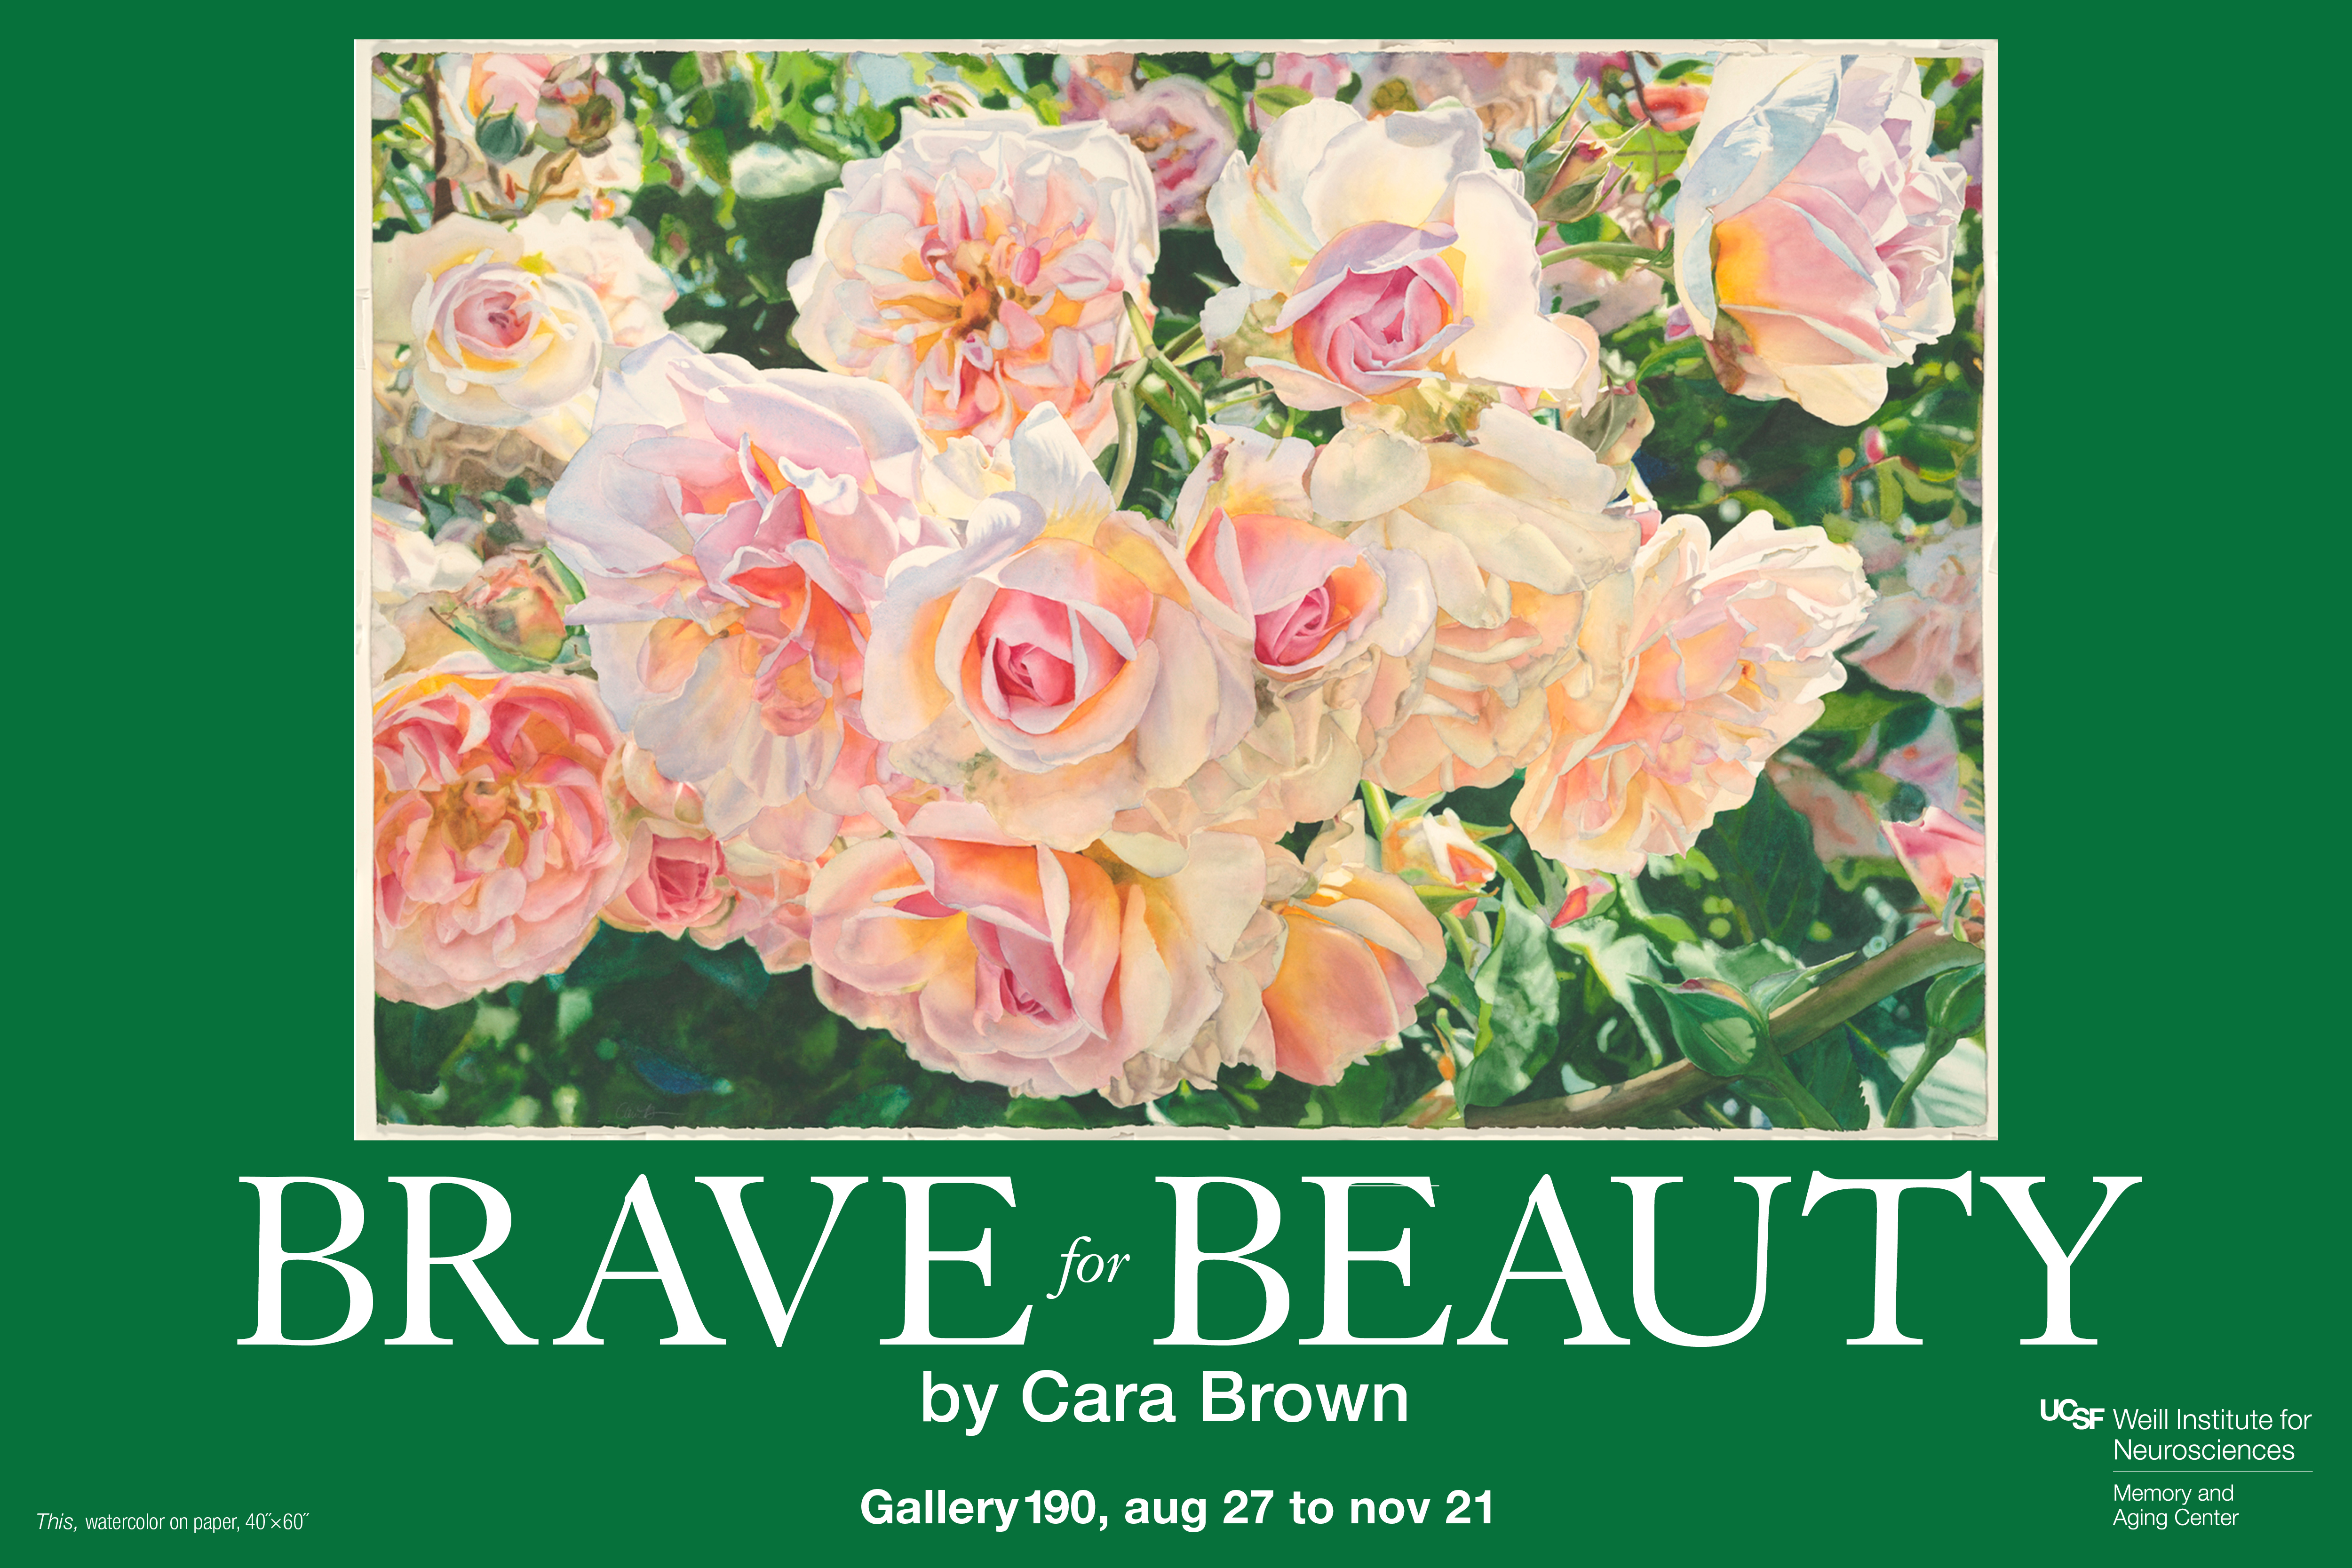 """Brave for Beauty"" exhibit by Cara Brown"